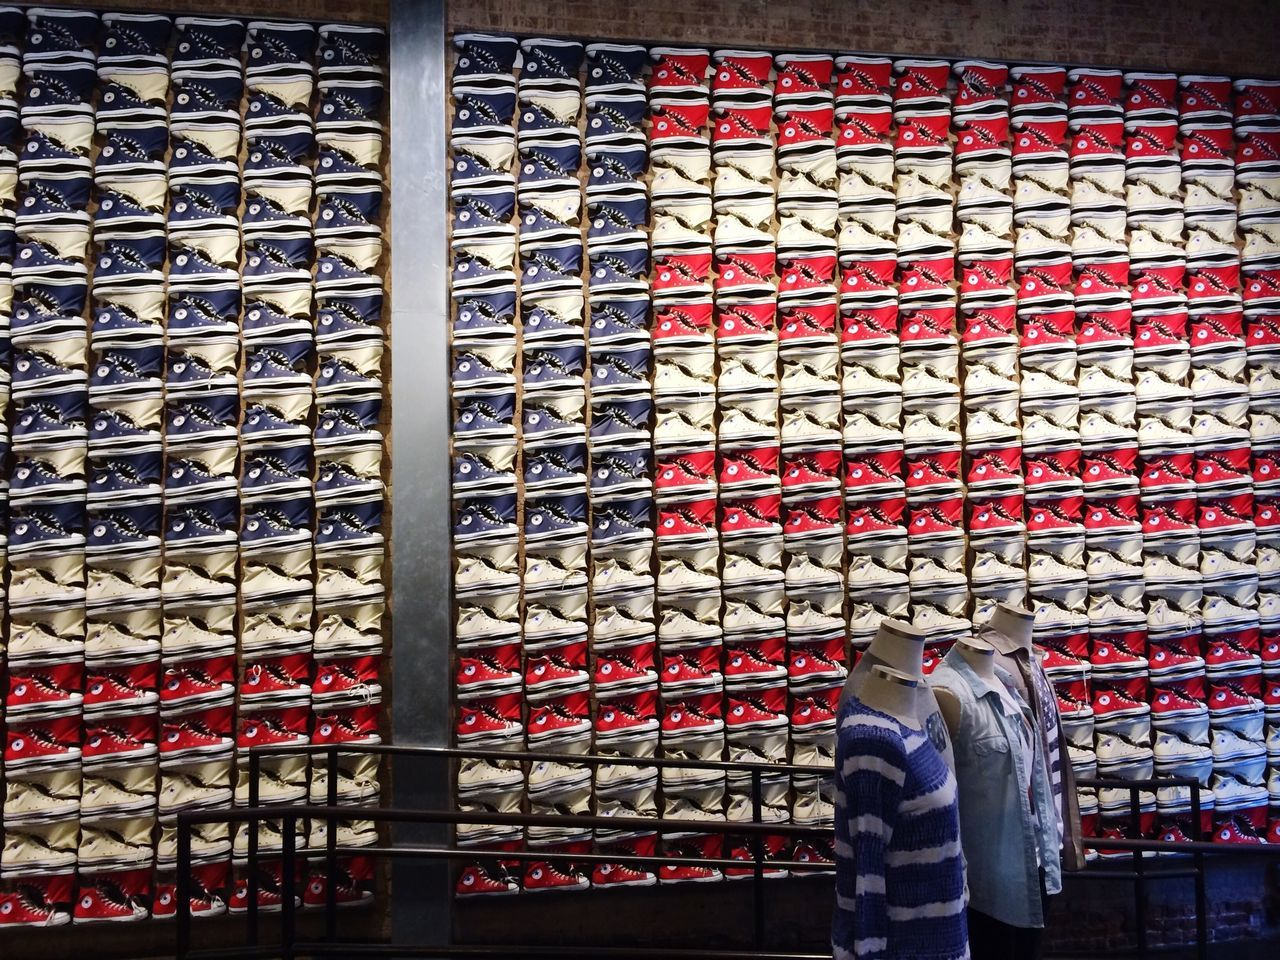 Showcase March Tourist Attraction  Tourism Converse Converse All Star Flag American American Flag New York New York City Store Shop Shopping ♡ Urban Urbanphotography Urban Lifestyle Everything In Its Place Beautifully Organized